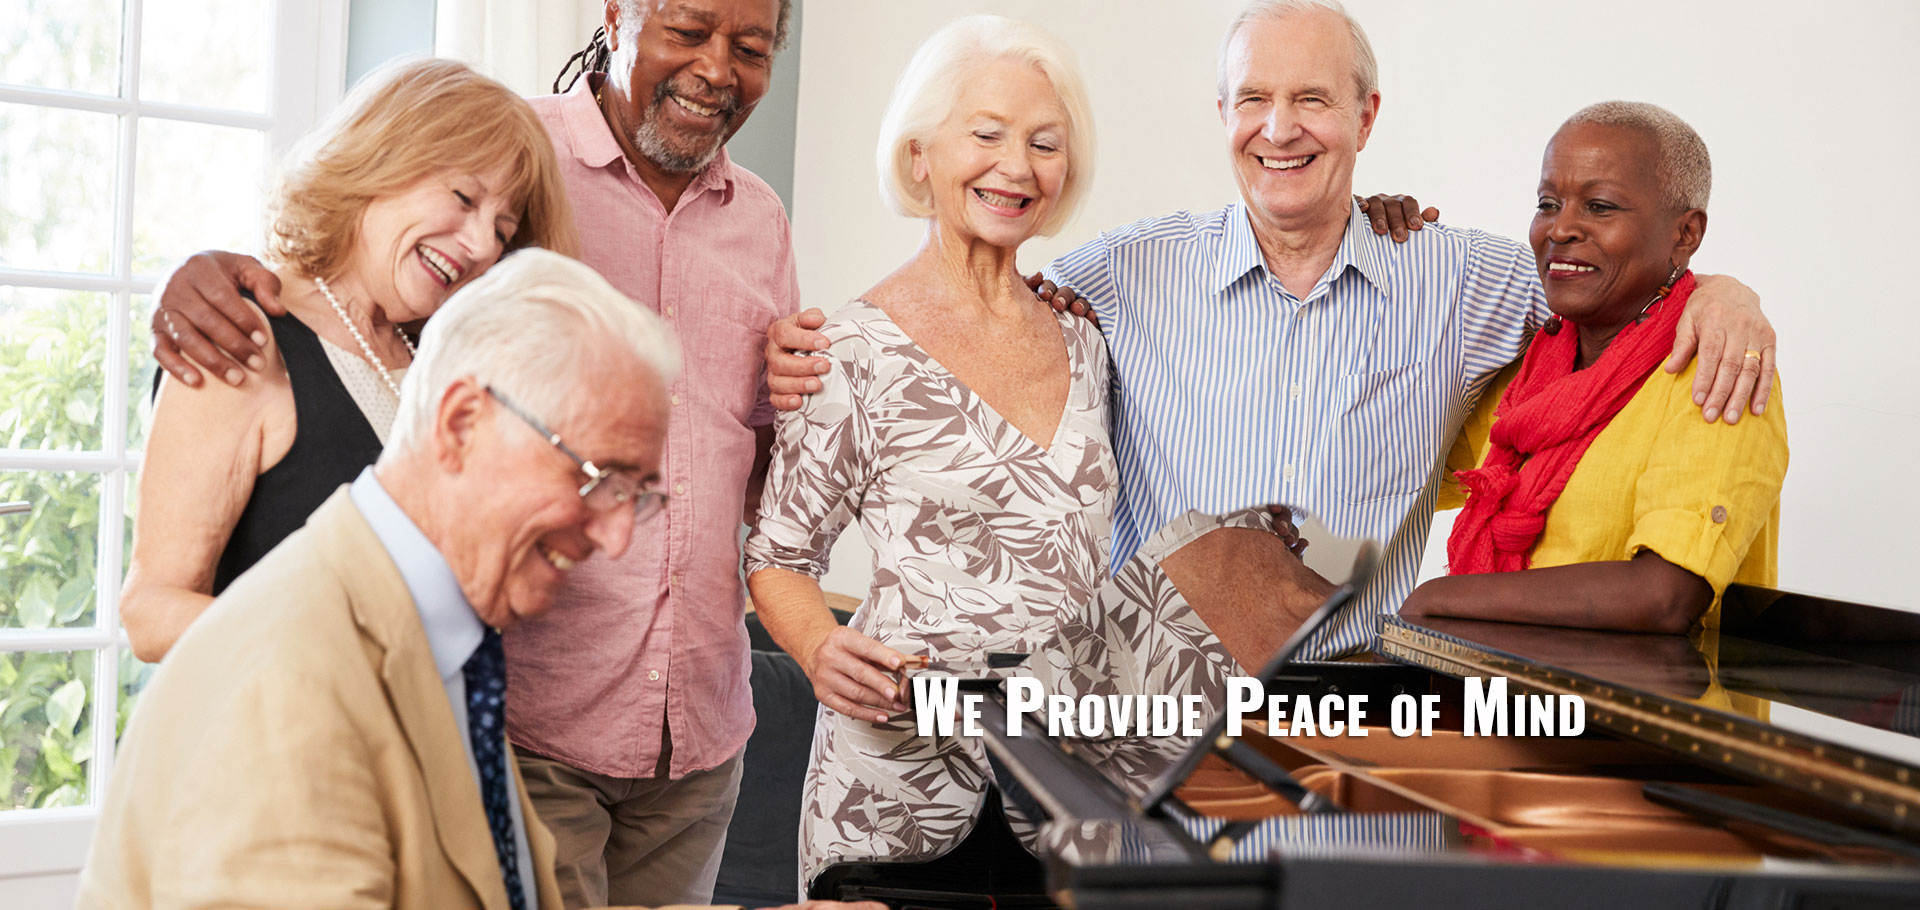 We Provide Peace of Mind